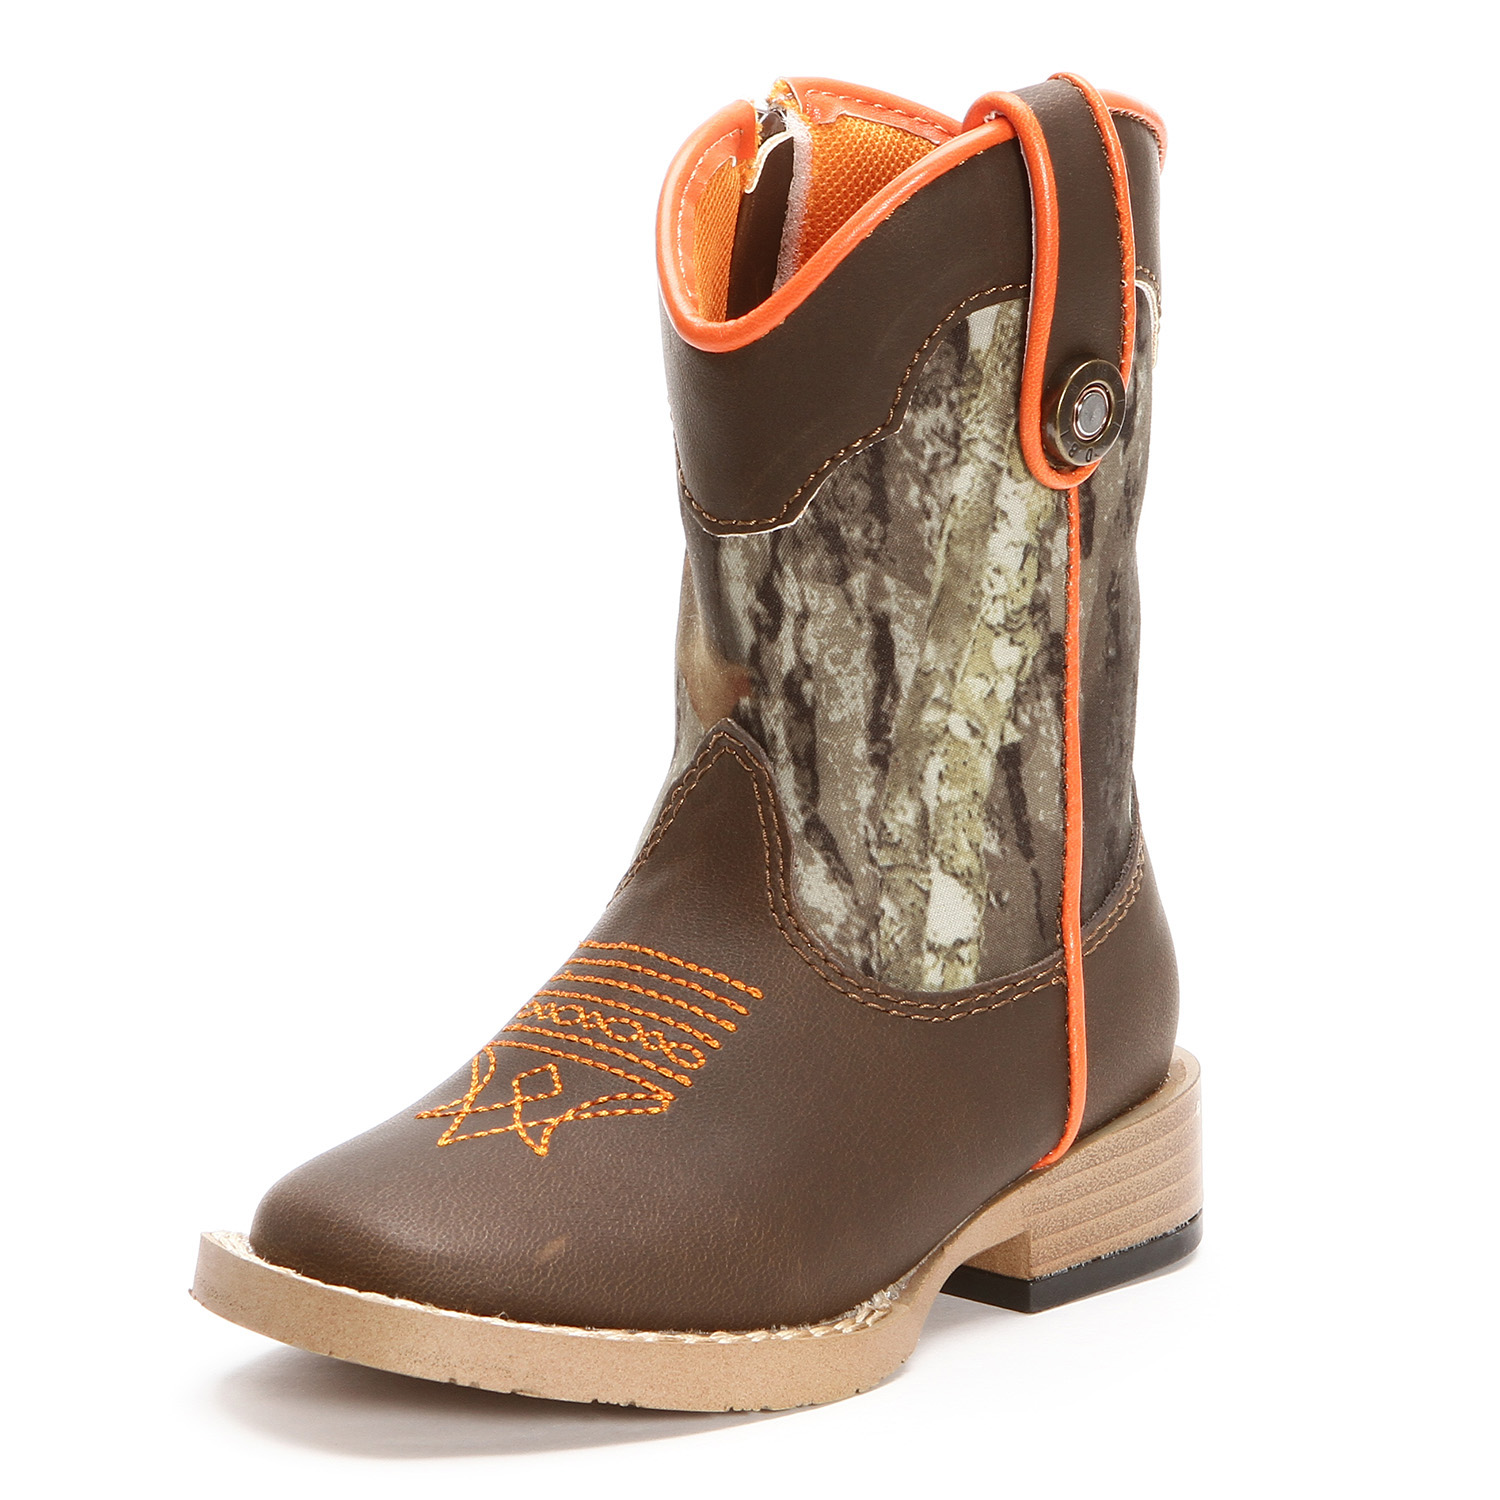 Double Barrel Buckshot Toddler Square Toe Cowboy Boots Camo